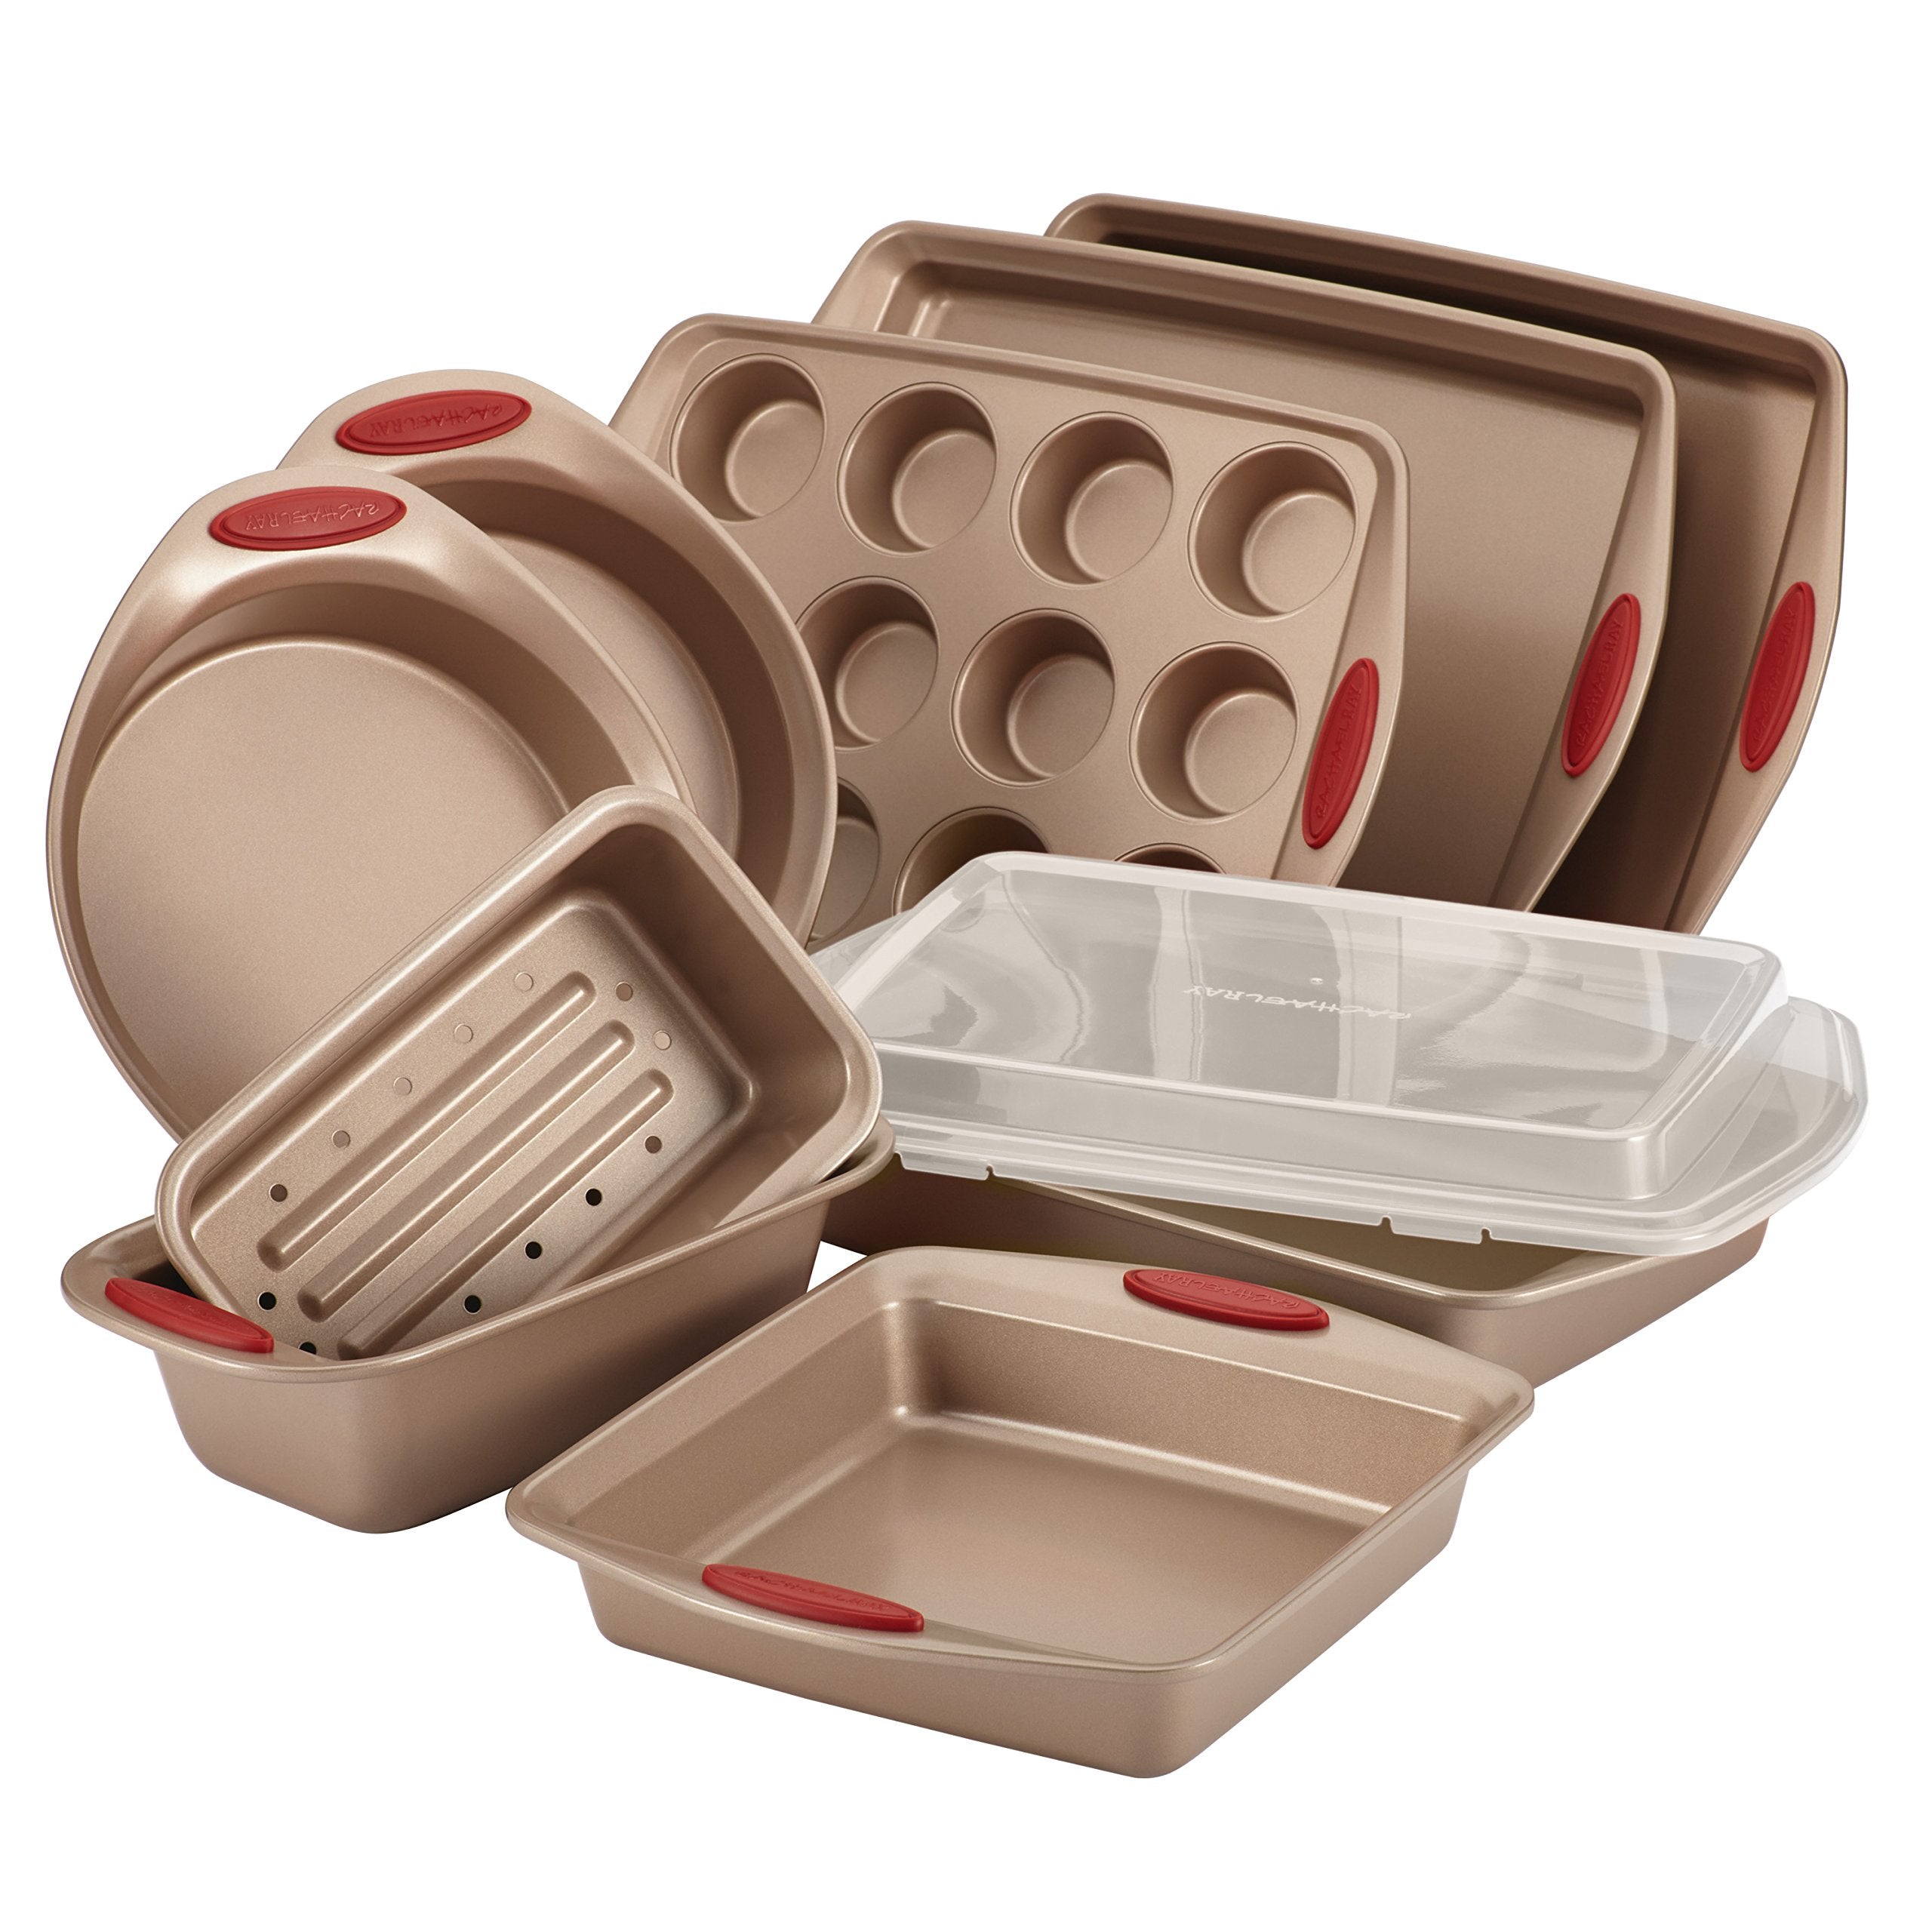 Rachael Ray 52410 Cucina Nonstick Bakeware Set with Baking Pans, Baking Sheets, Cookie Sheets, Cake Pan, Muffin Pan and Bread Pan - 10 Piece, Latte Brown with Cranberry Red Grip